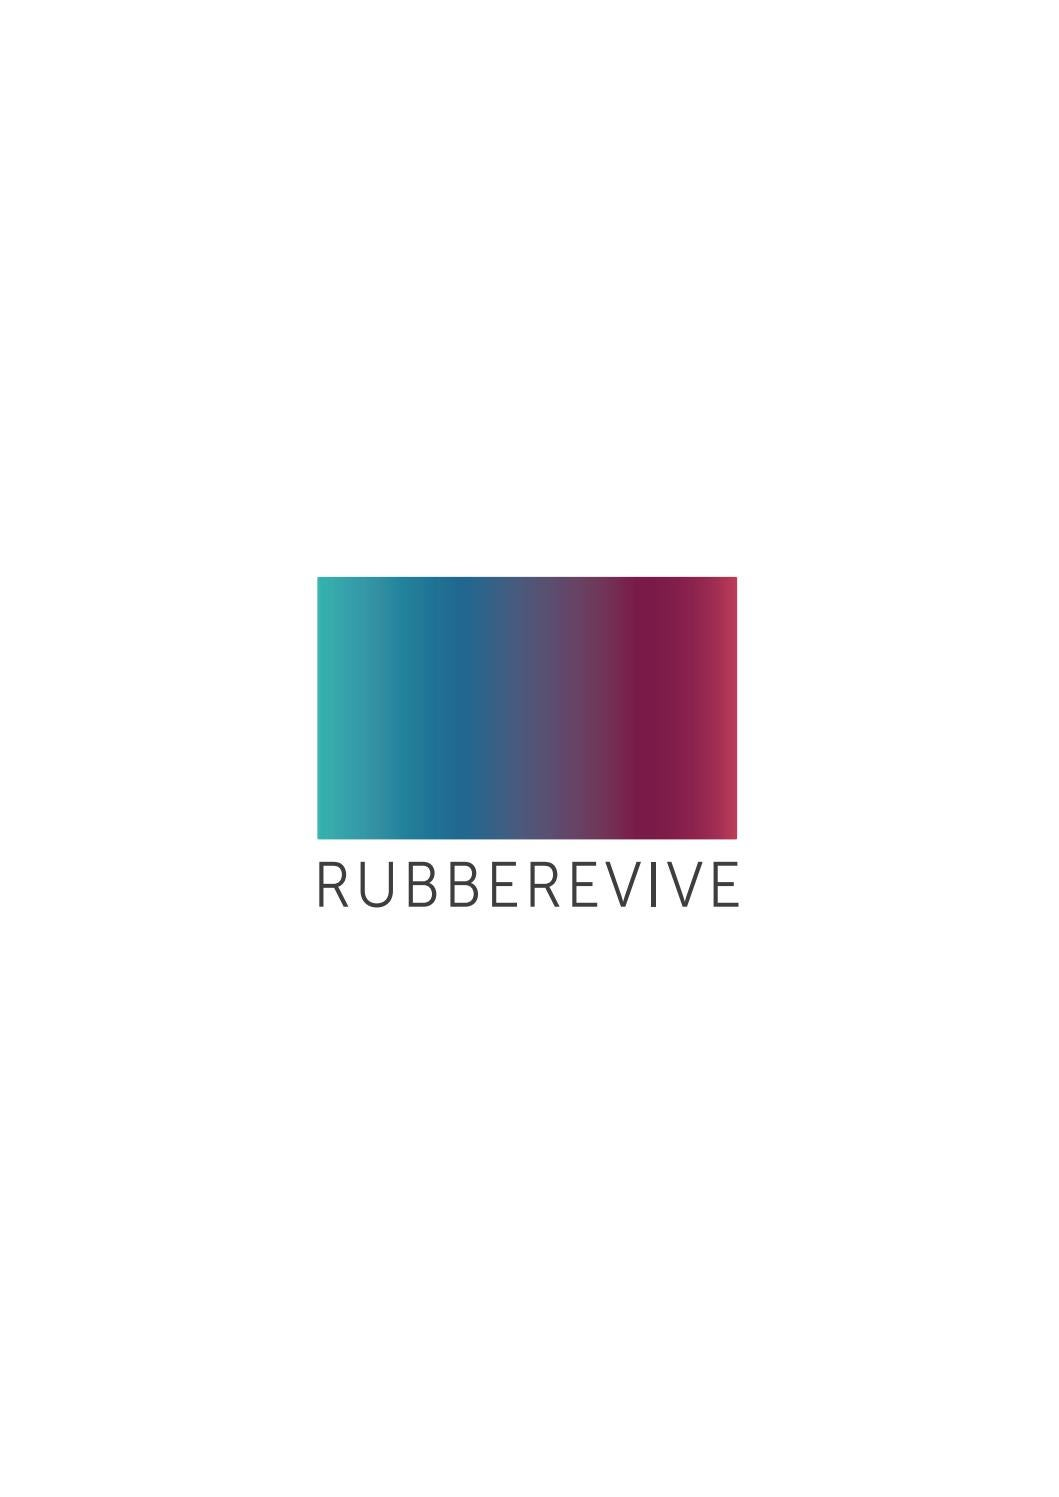 Rubberevive by Matteo Ercole issuu